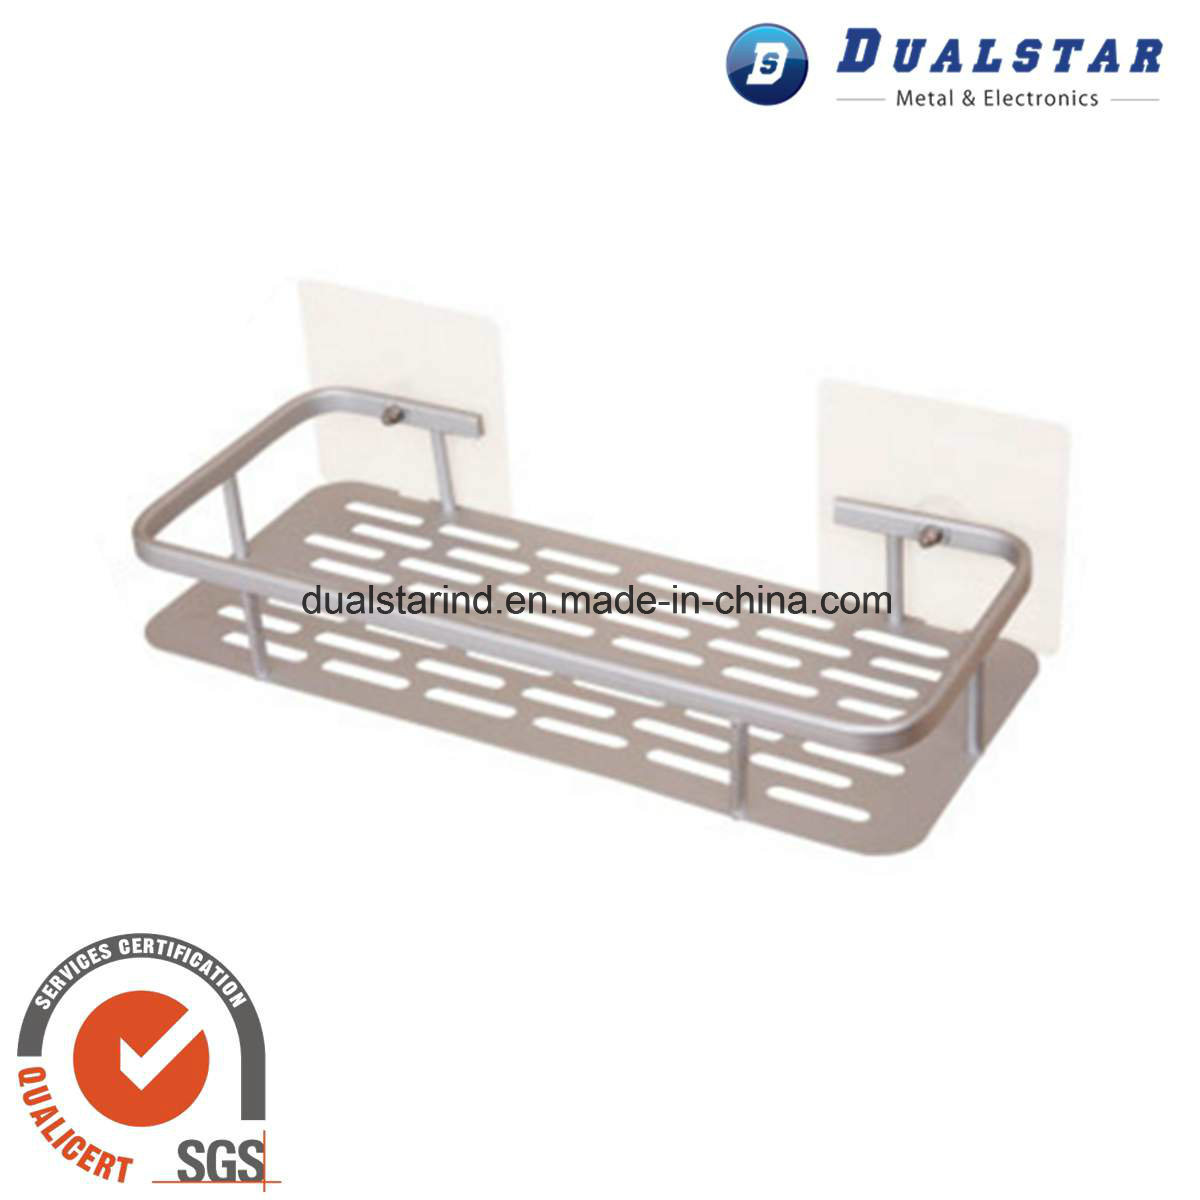 Suction Cup Type Single Layer Storage Rack for Bathroom